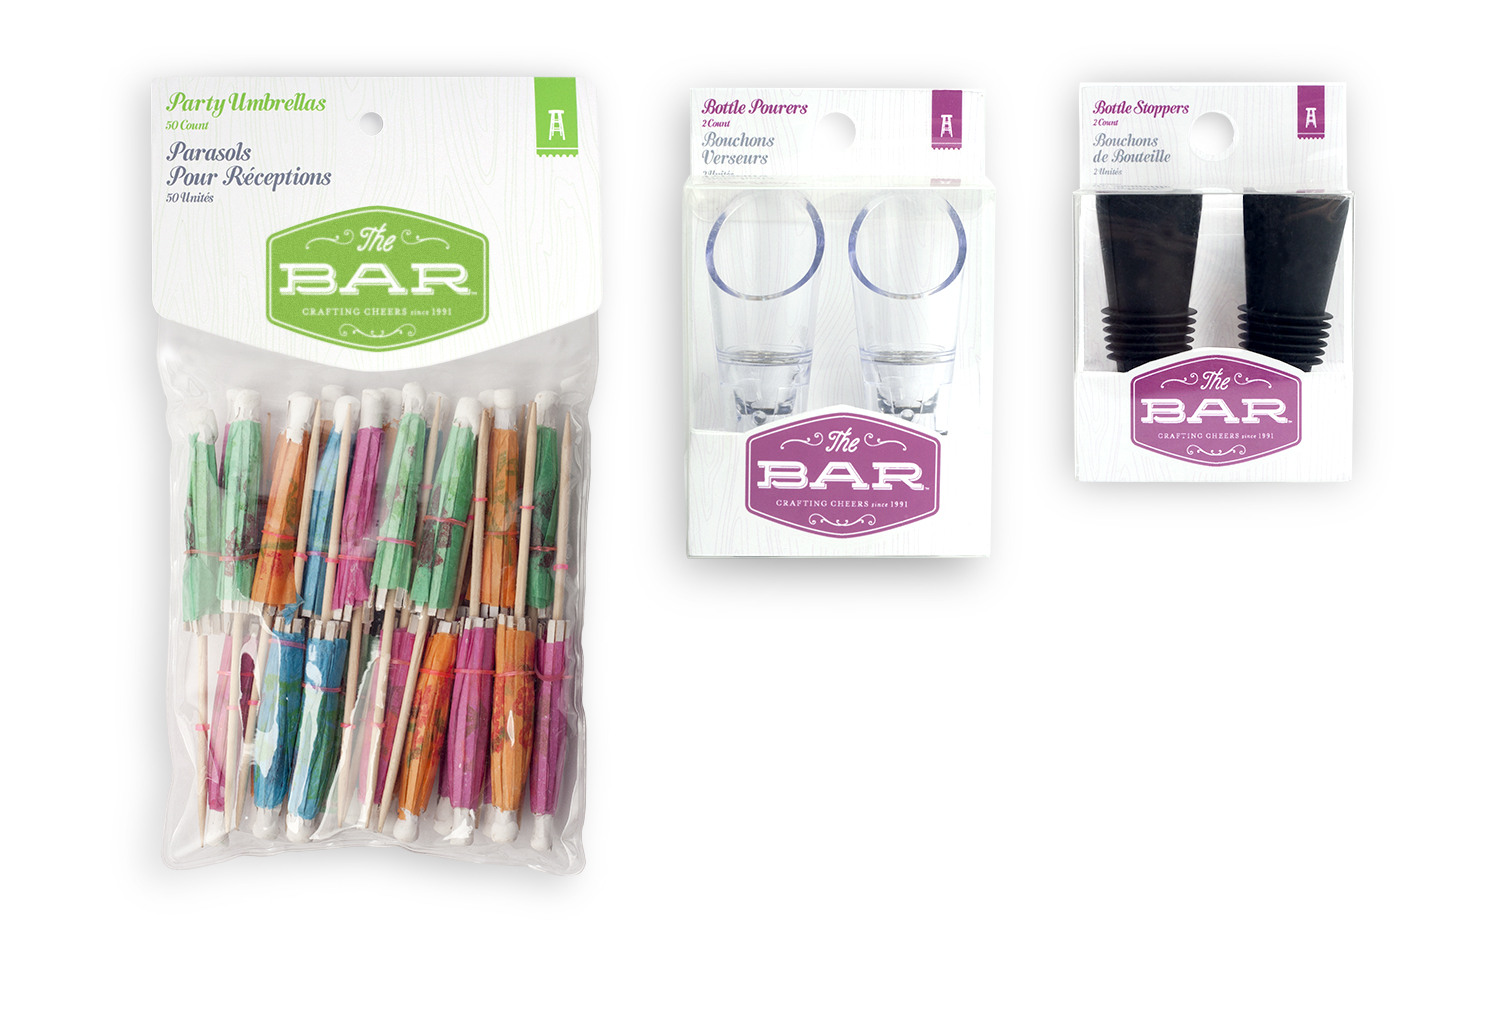 The Bar Drinkware Accessories